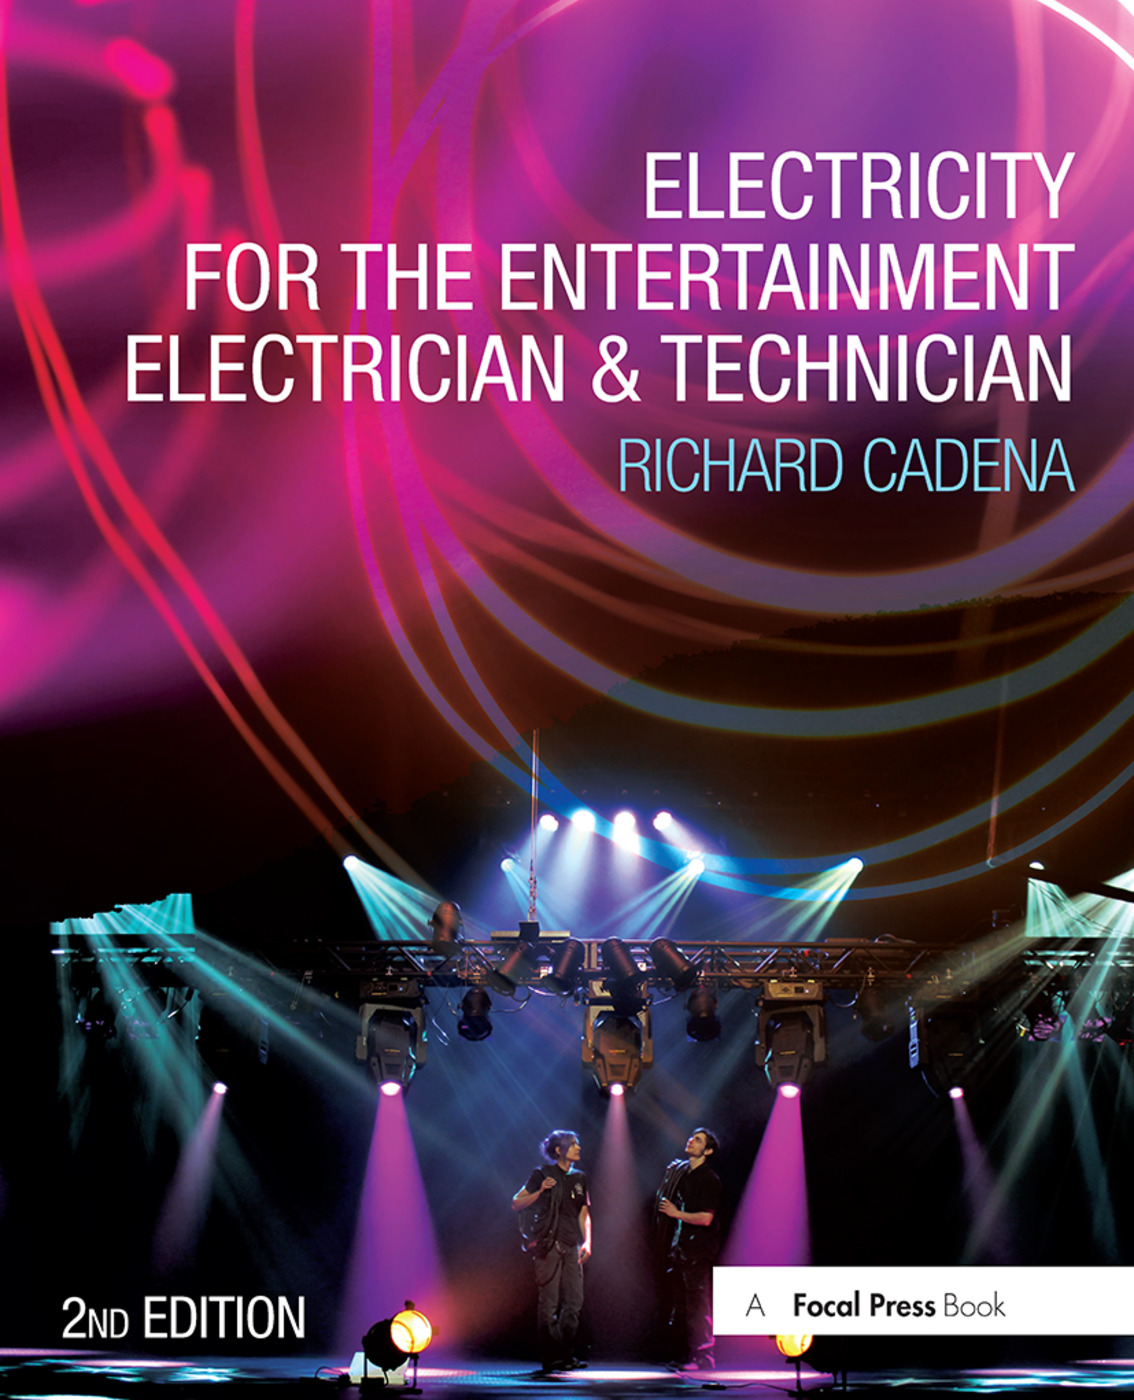 Electricity for the Entertainment Electrician & Technician book cover